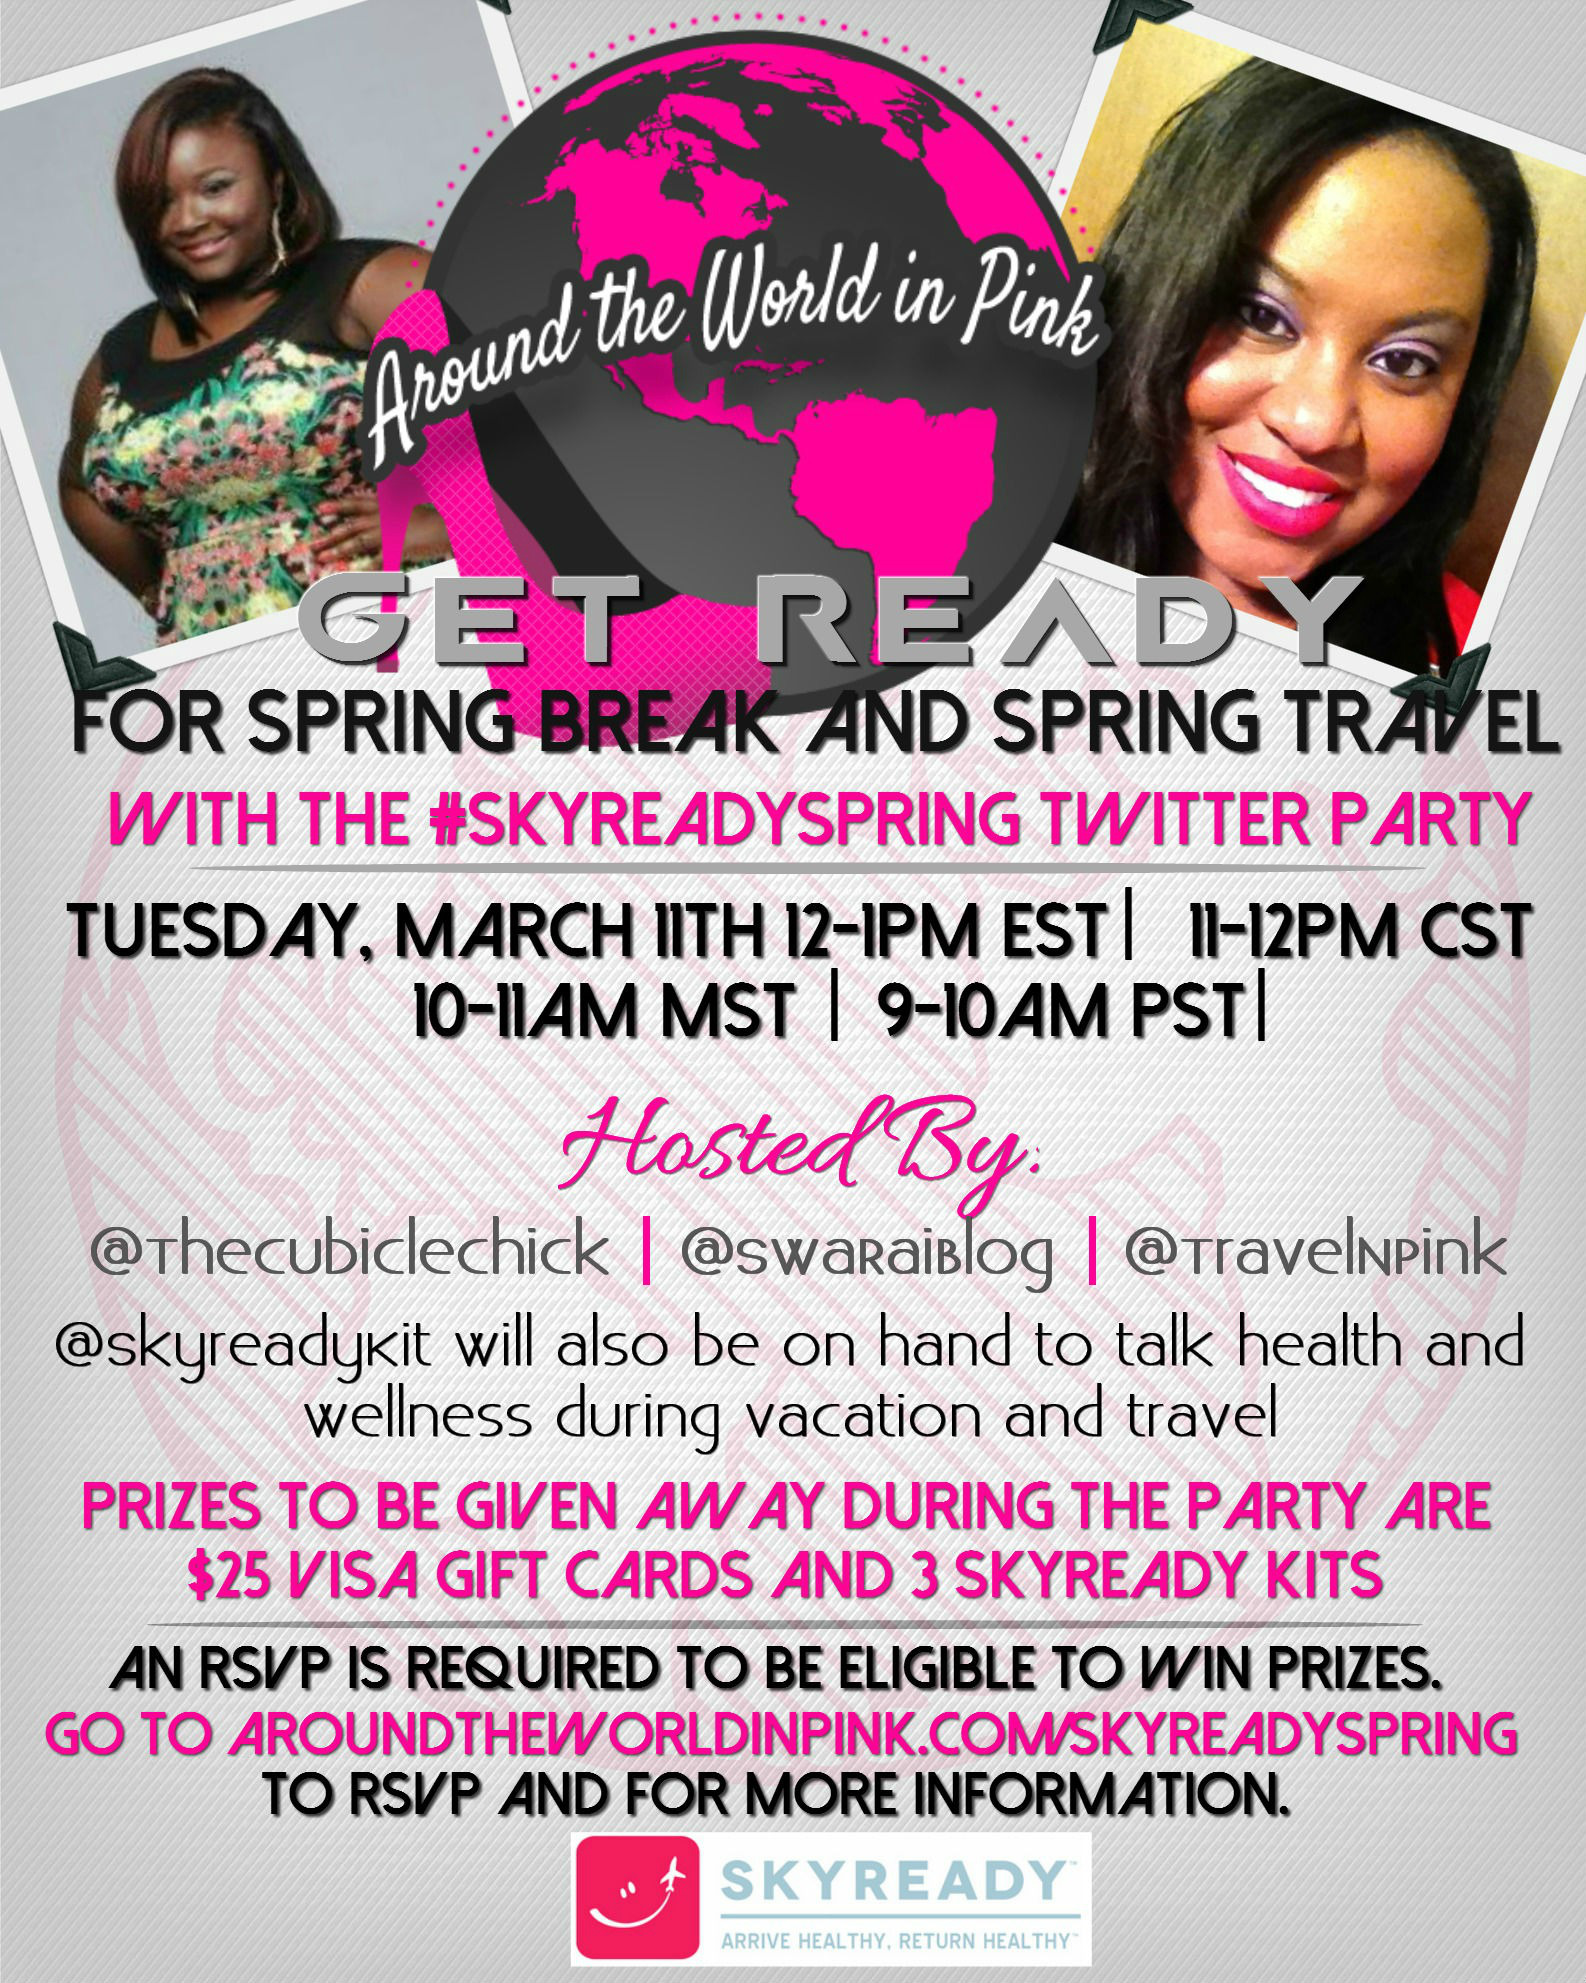 Join us for the #SkyreadySpring Twitter Party 3/11